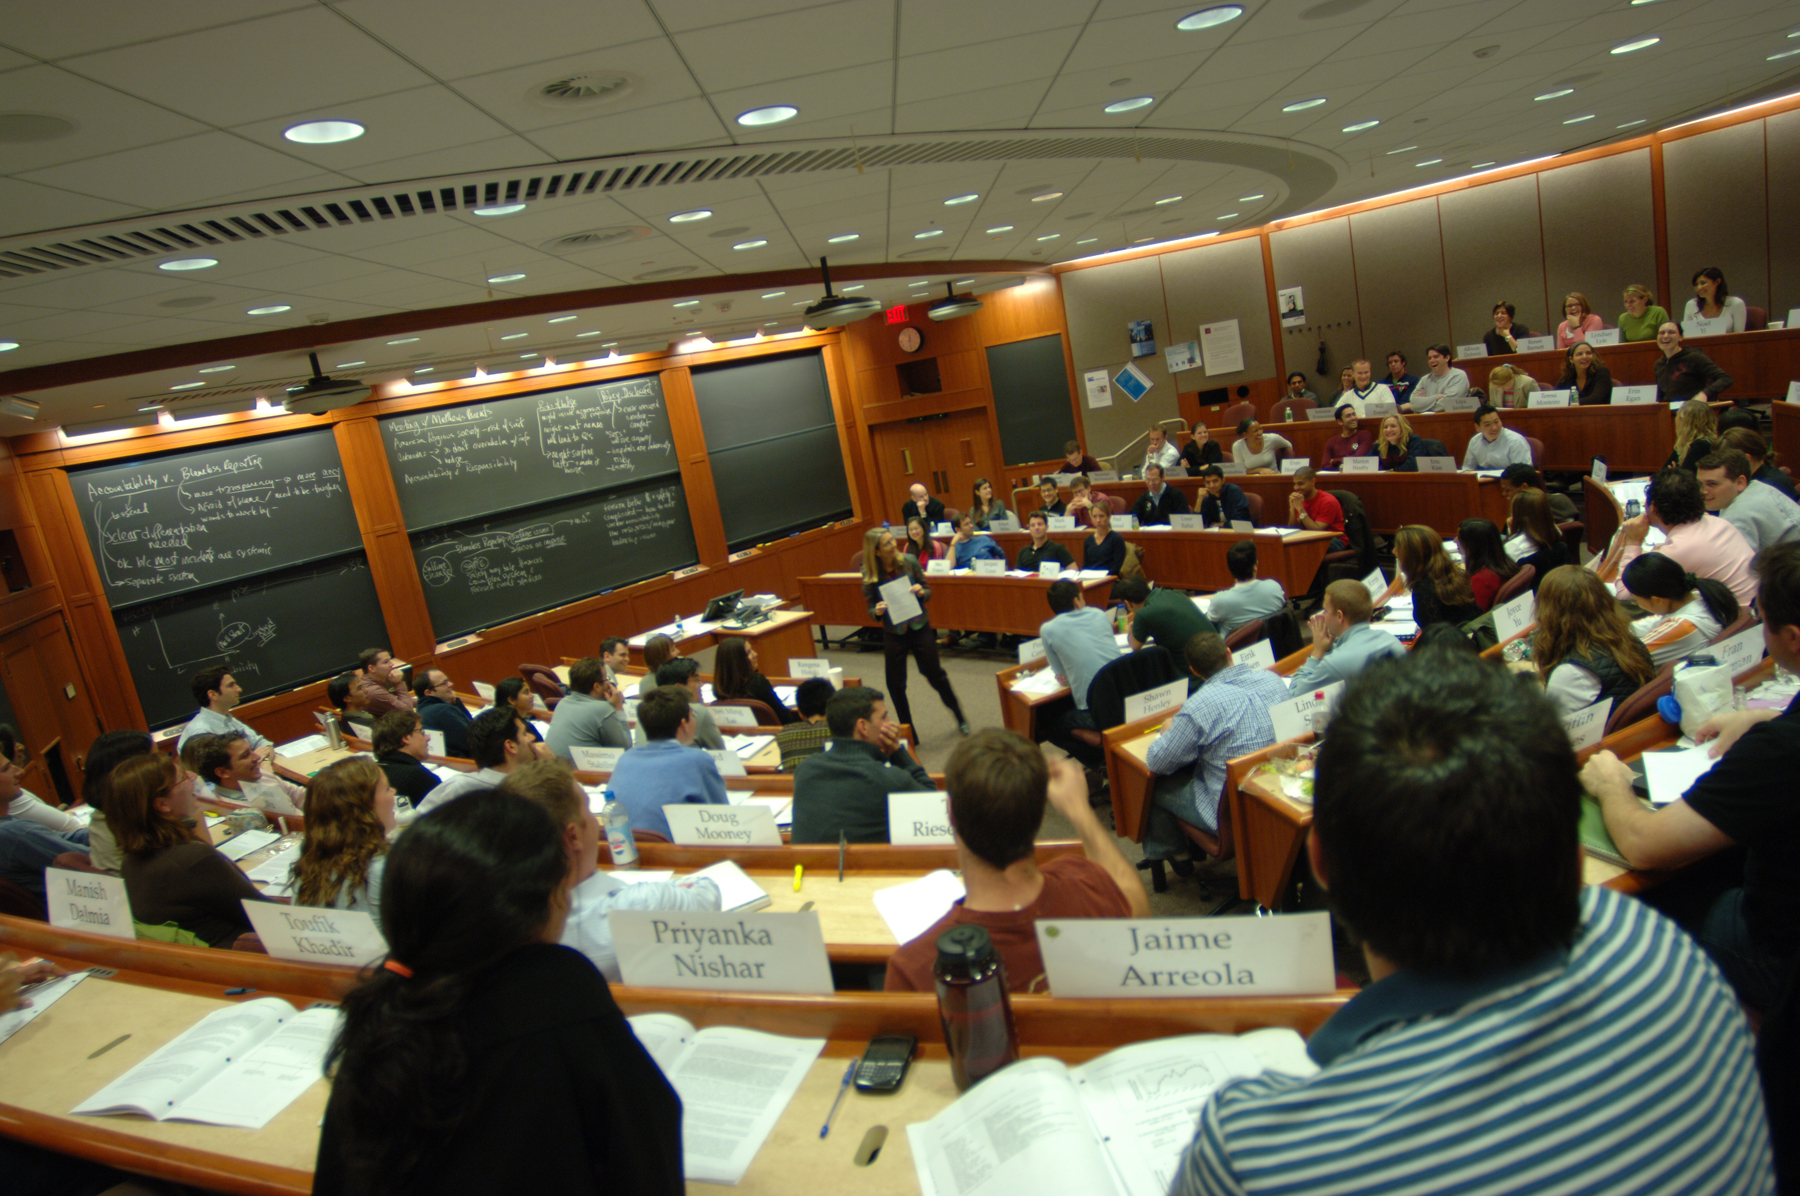 Friday Factoid: Faculty Mentoring and Development at HBS - mbaMission